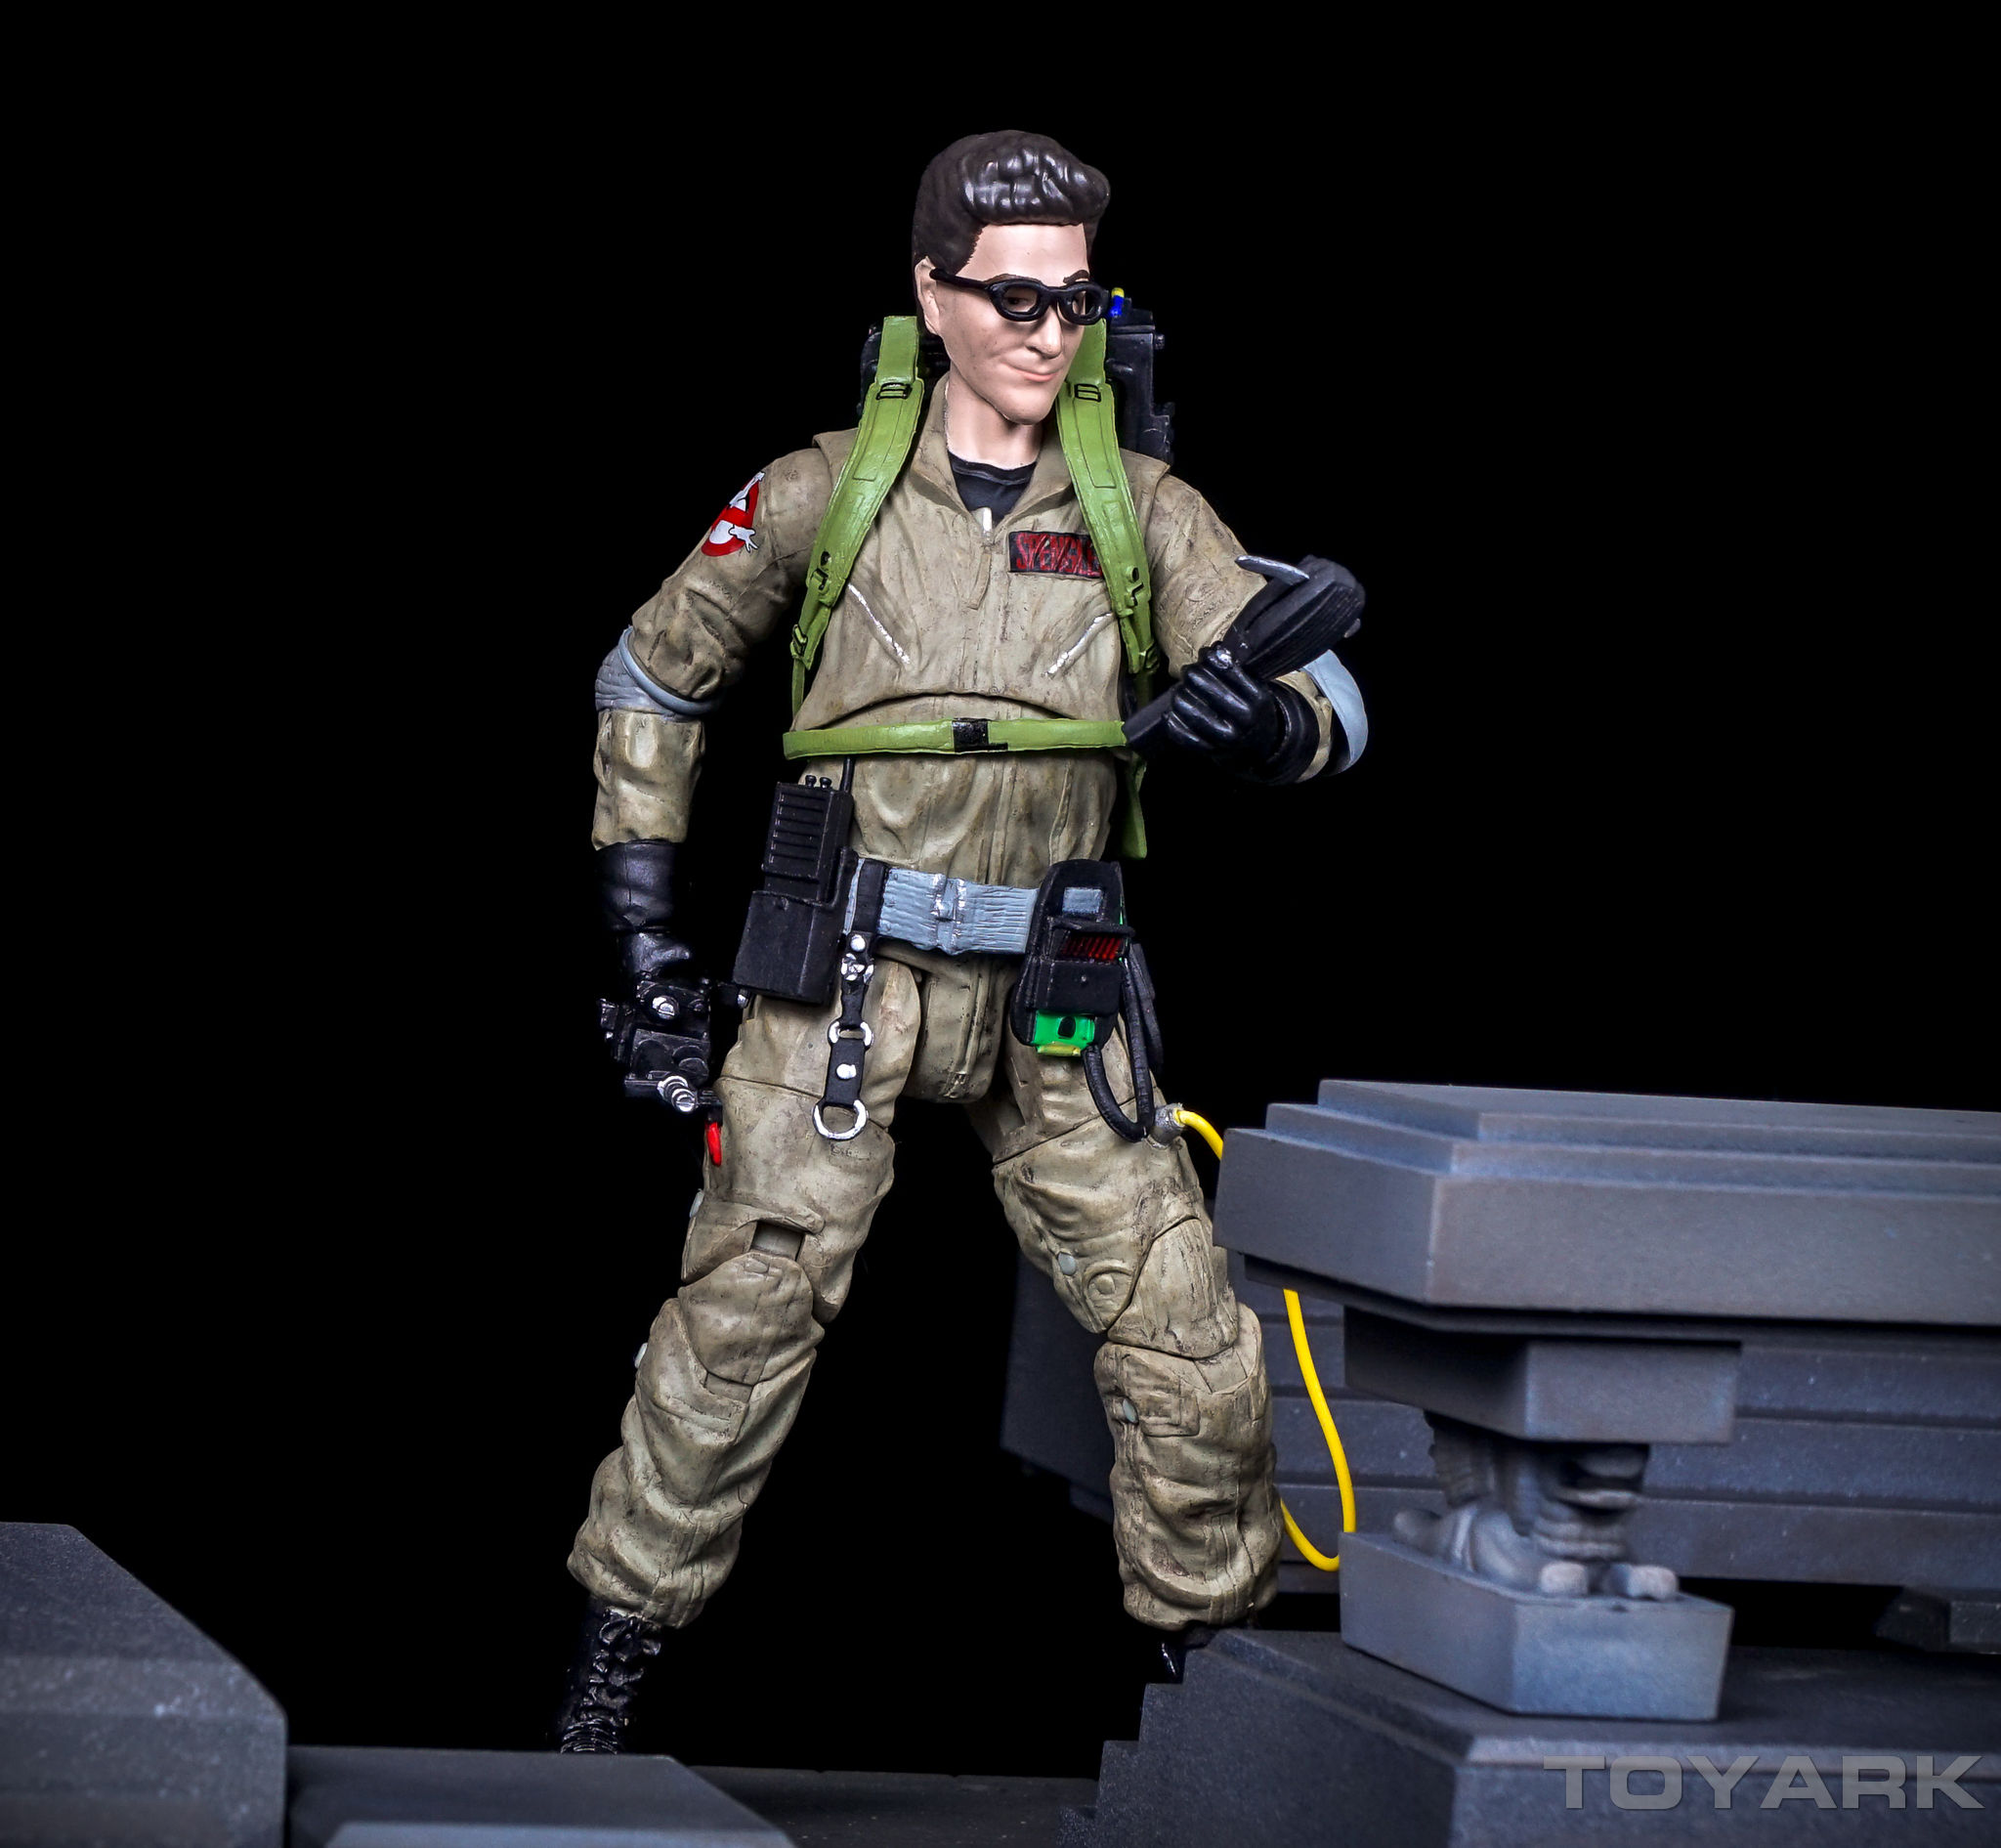 http://news.toyark.com/wp-content/uploads/sites/4/2016/05/DST-Ghostbusters-Select-Figures-055.jpg